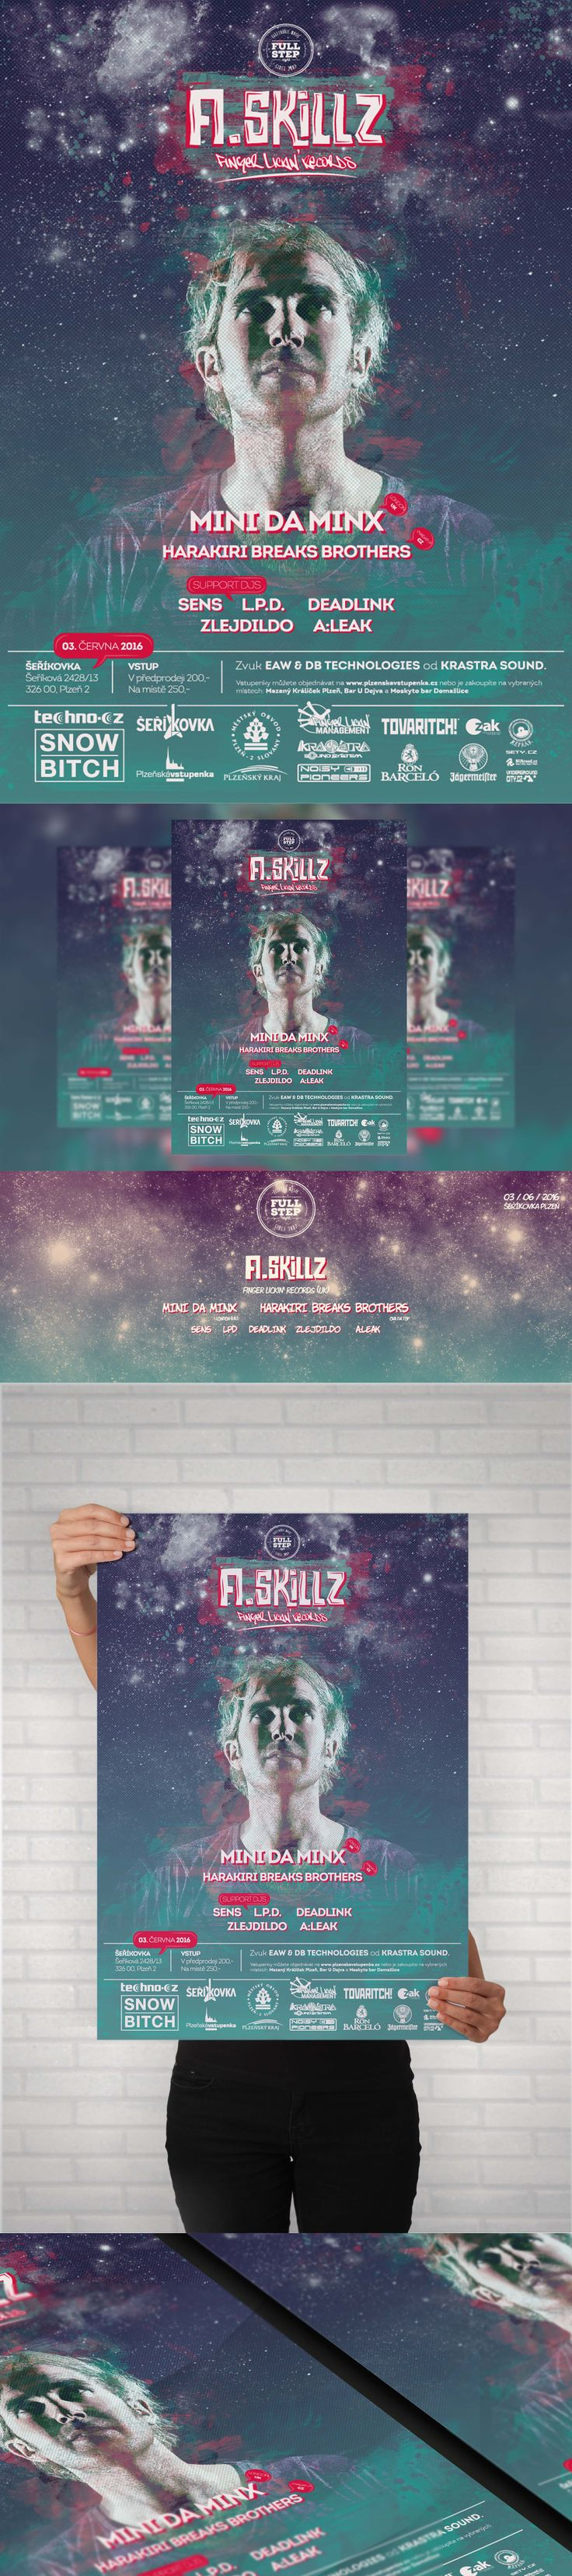 Full Step with A-Skillz  Electronic music event - A3, A4, A5 Poster, Facebook event header and preview. #poster #posterdesign #fbheader #graphicdesign